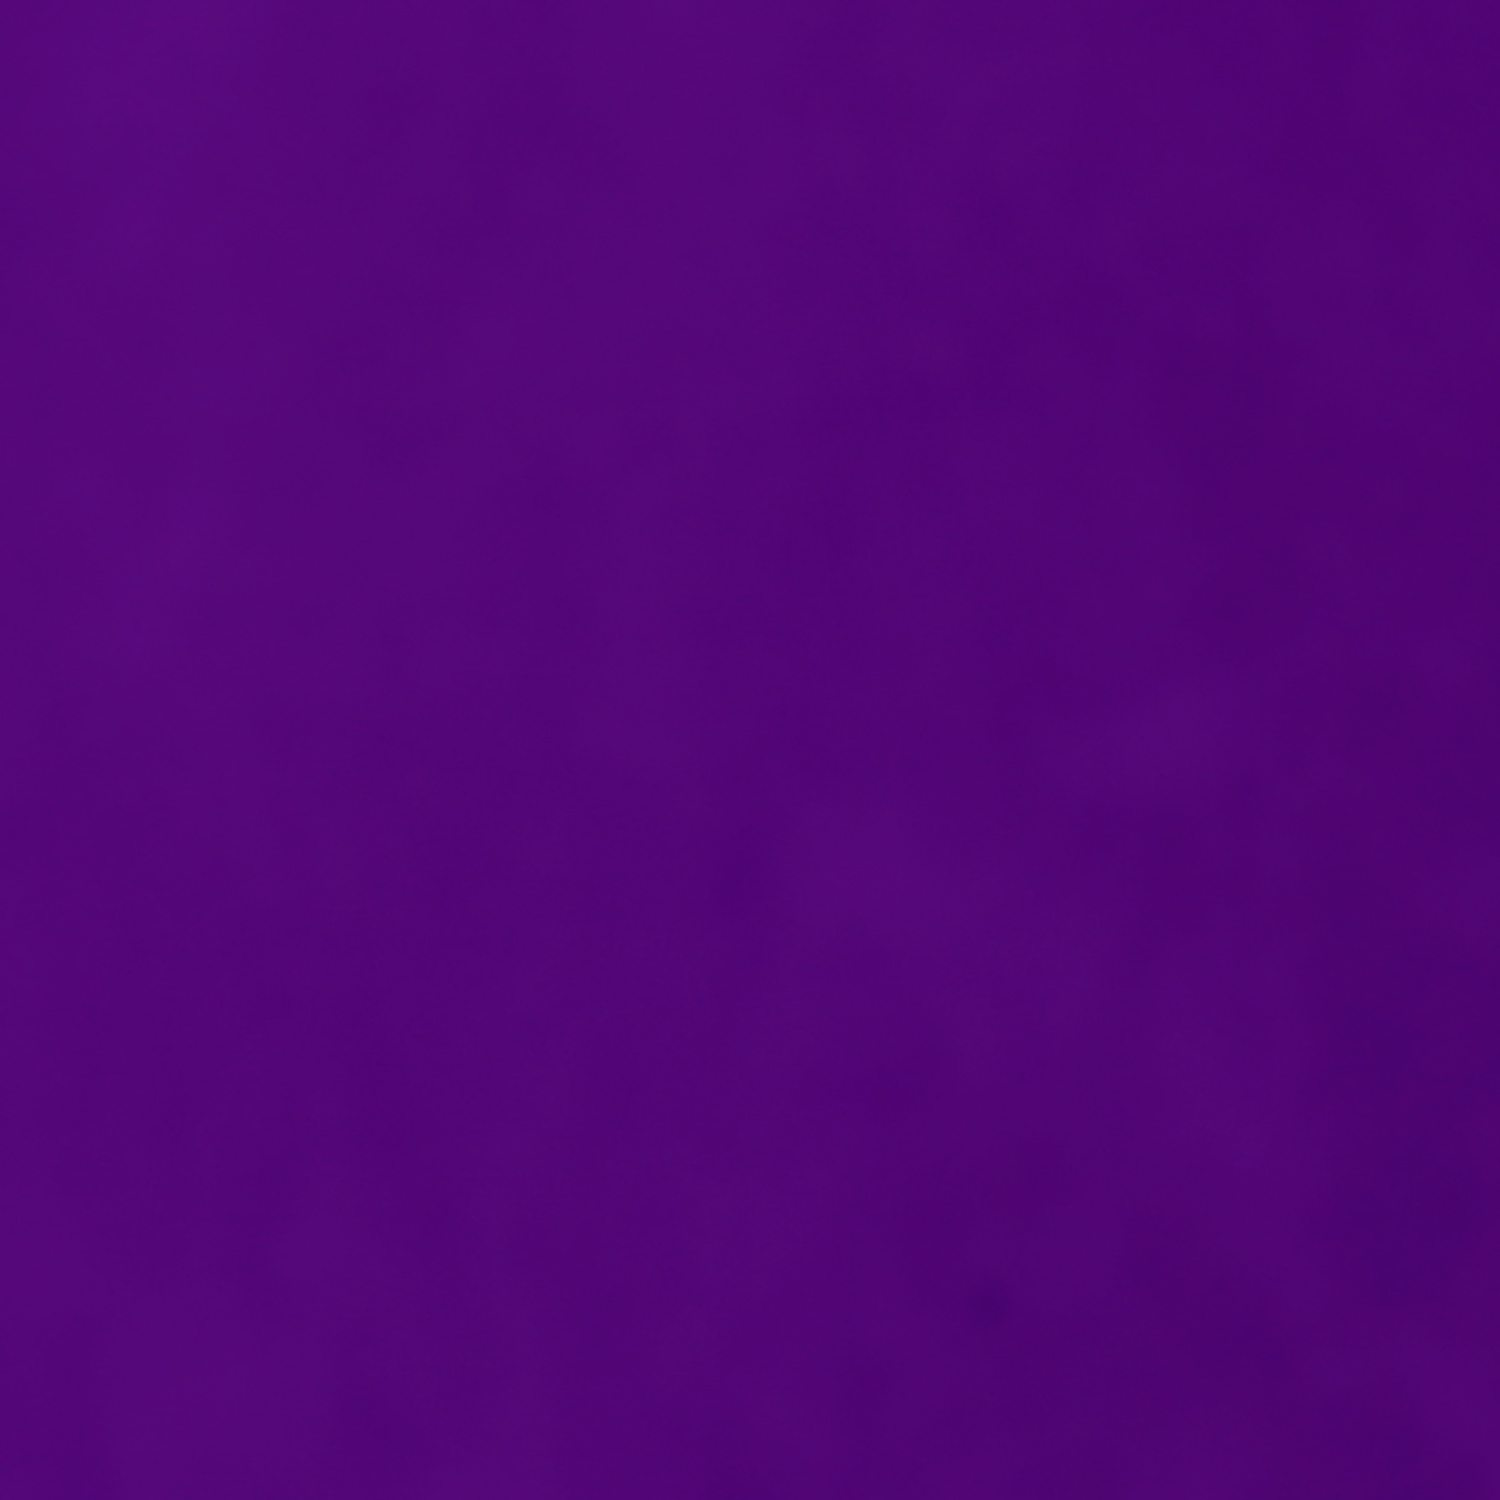 Slamp Purple